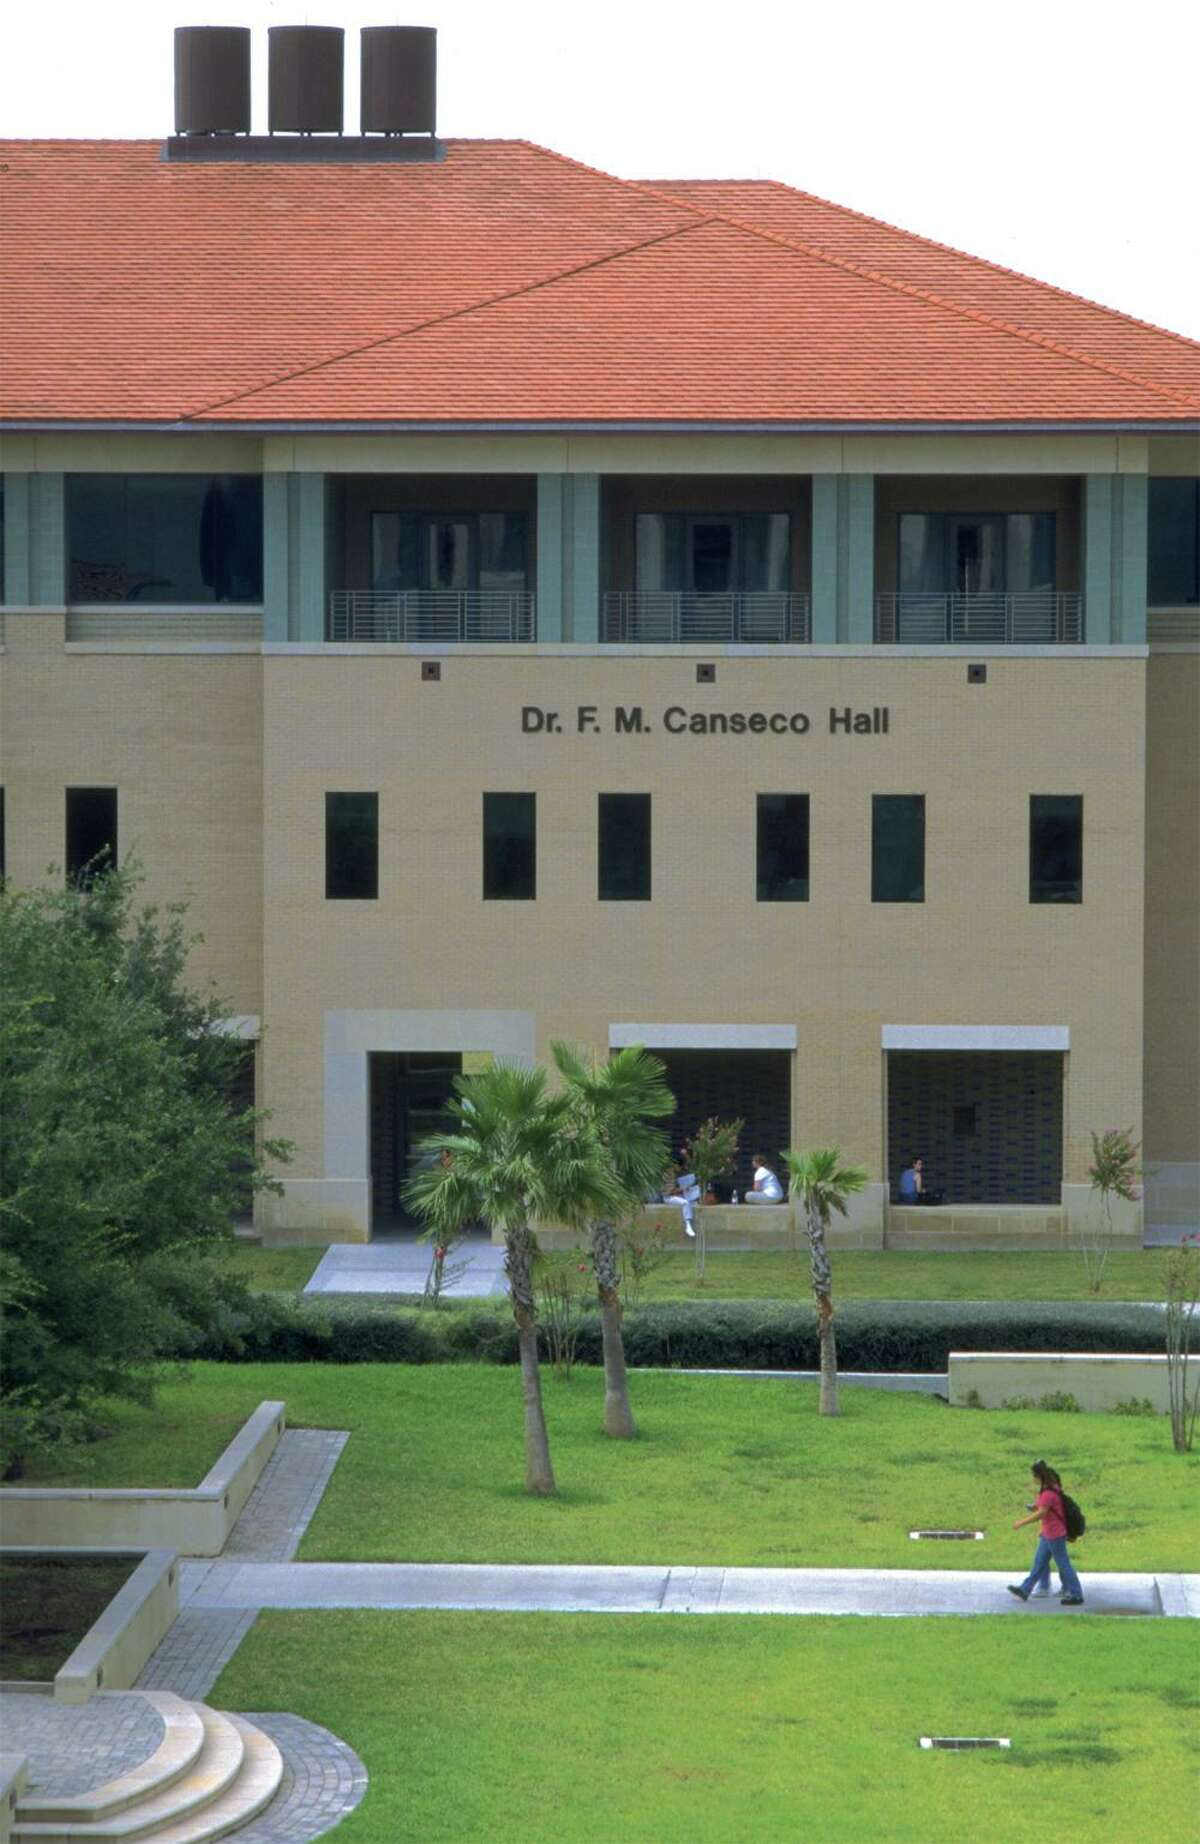 TAMIU's nursing program was listed among the top 14 in Texas according to Best Value Schools.